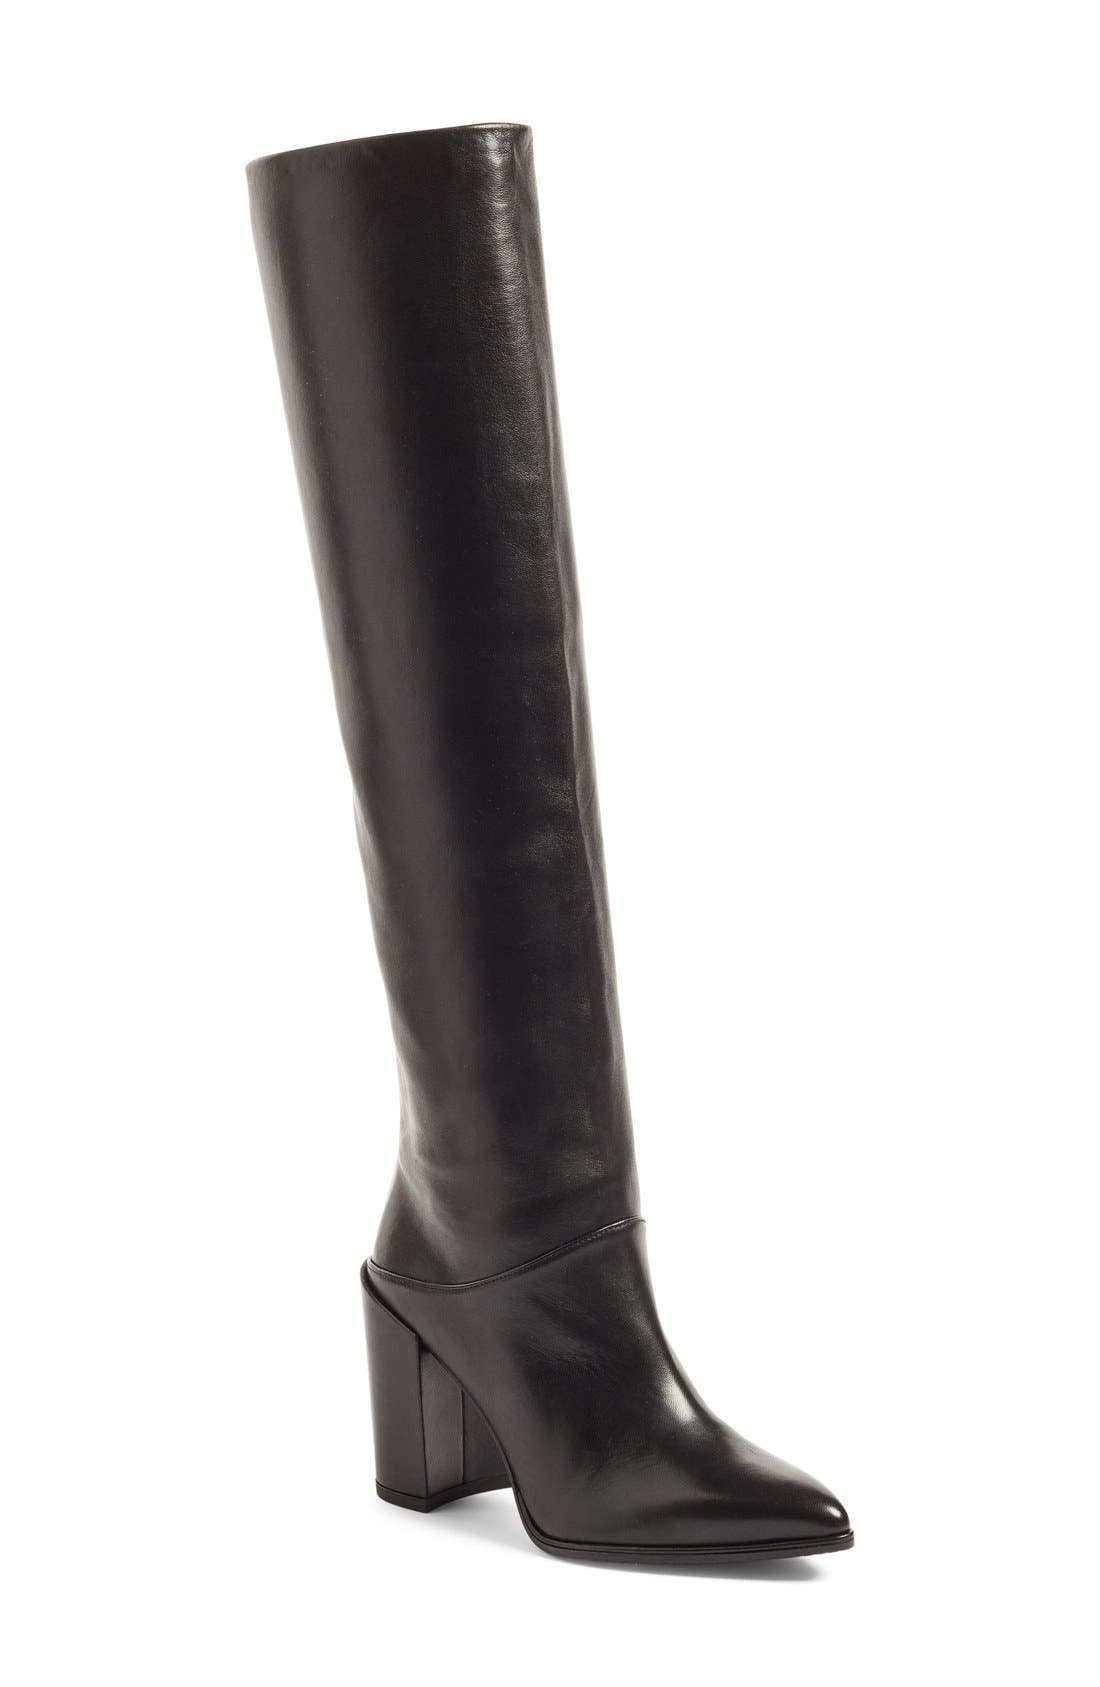 Alternate Image 1 Selected - Stuart Weitzman Scrunchy Leather Knee High Boot (Women)